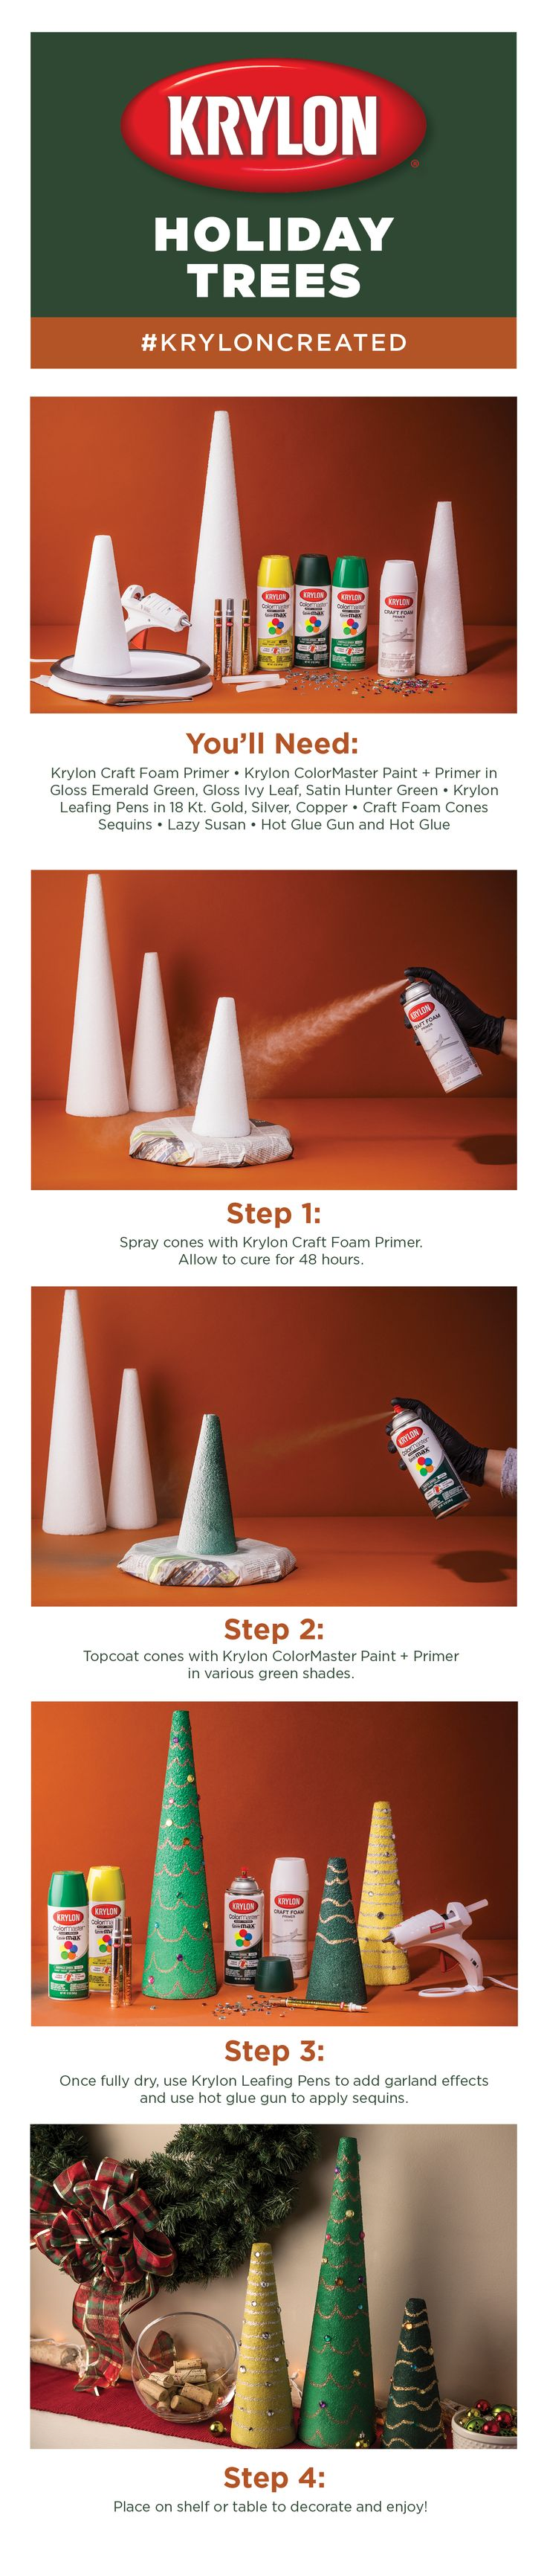 Painting miniatures color master primer - Craft Foam Cones Are The Perfect Way To Create Christmas Tree Home D Cor For The Holidays Spray Paint Using Krylon Craft Foam Primer Krylon Colormaster In